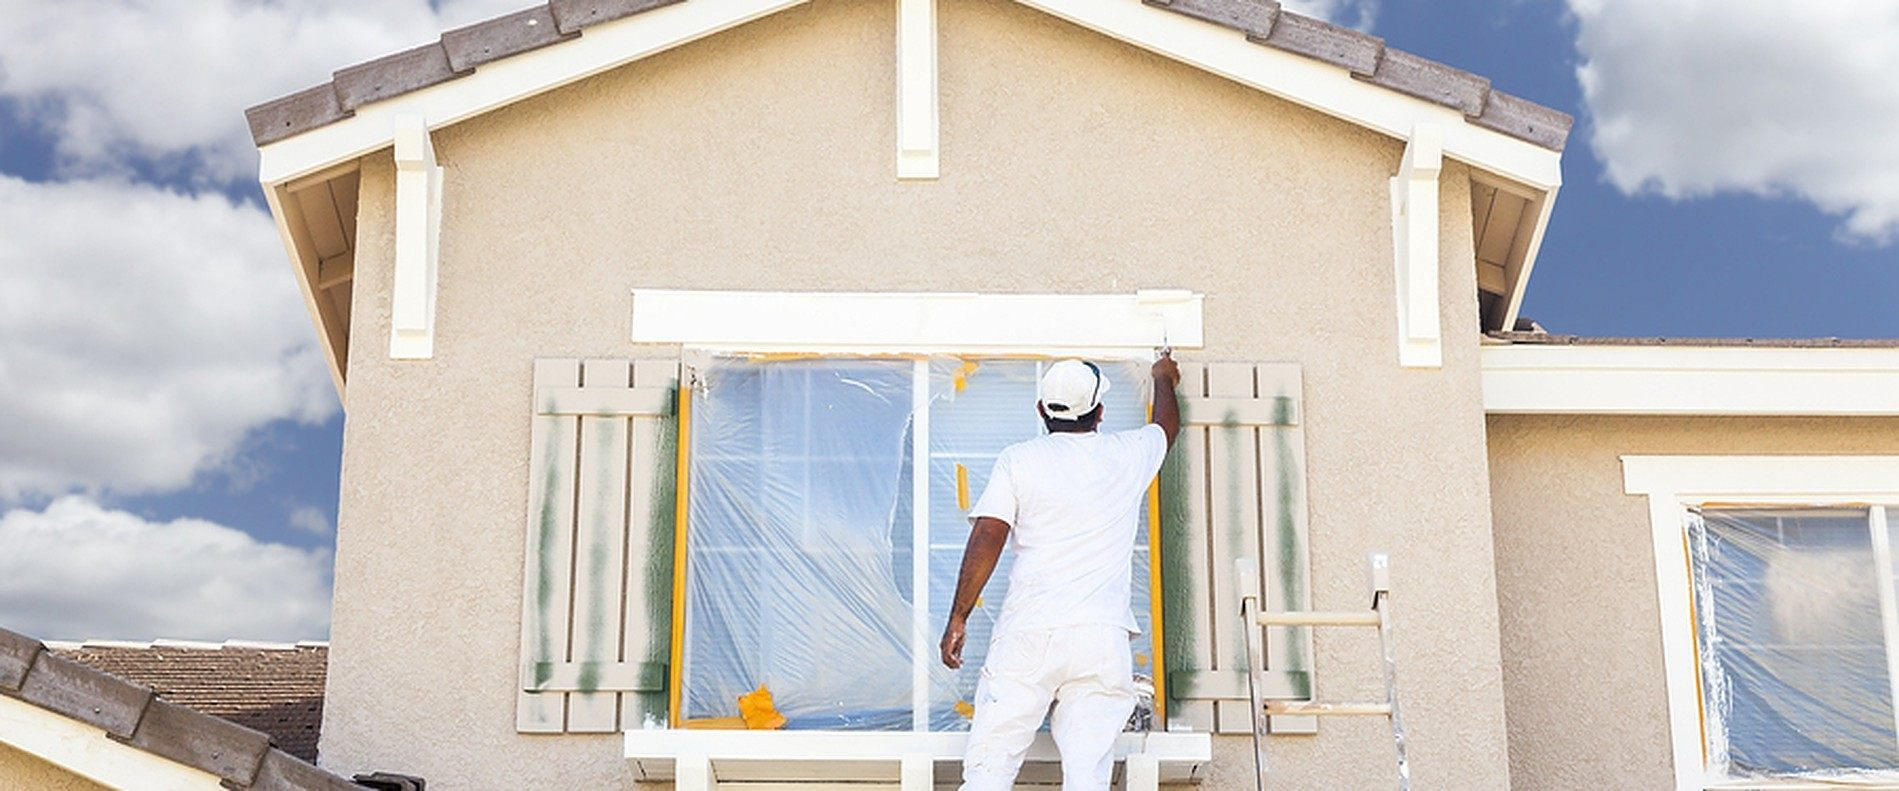 how to pass the C-33 painting contractor license exam in california and meet the basic CSLB license requirements